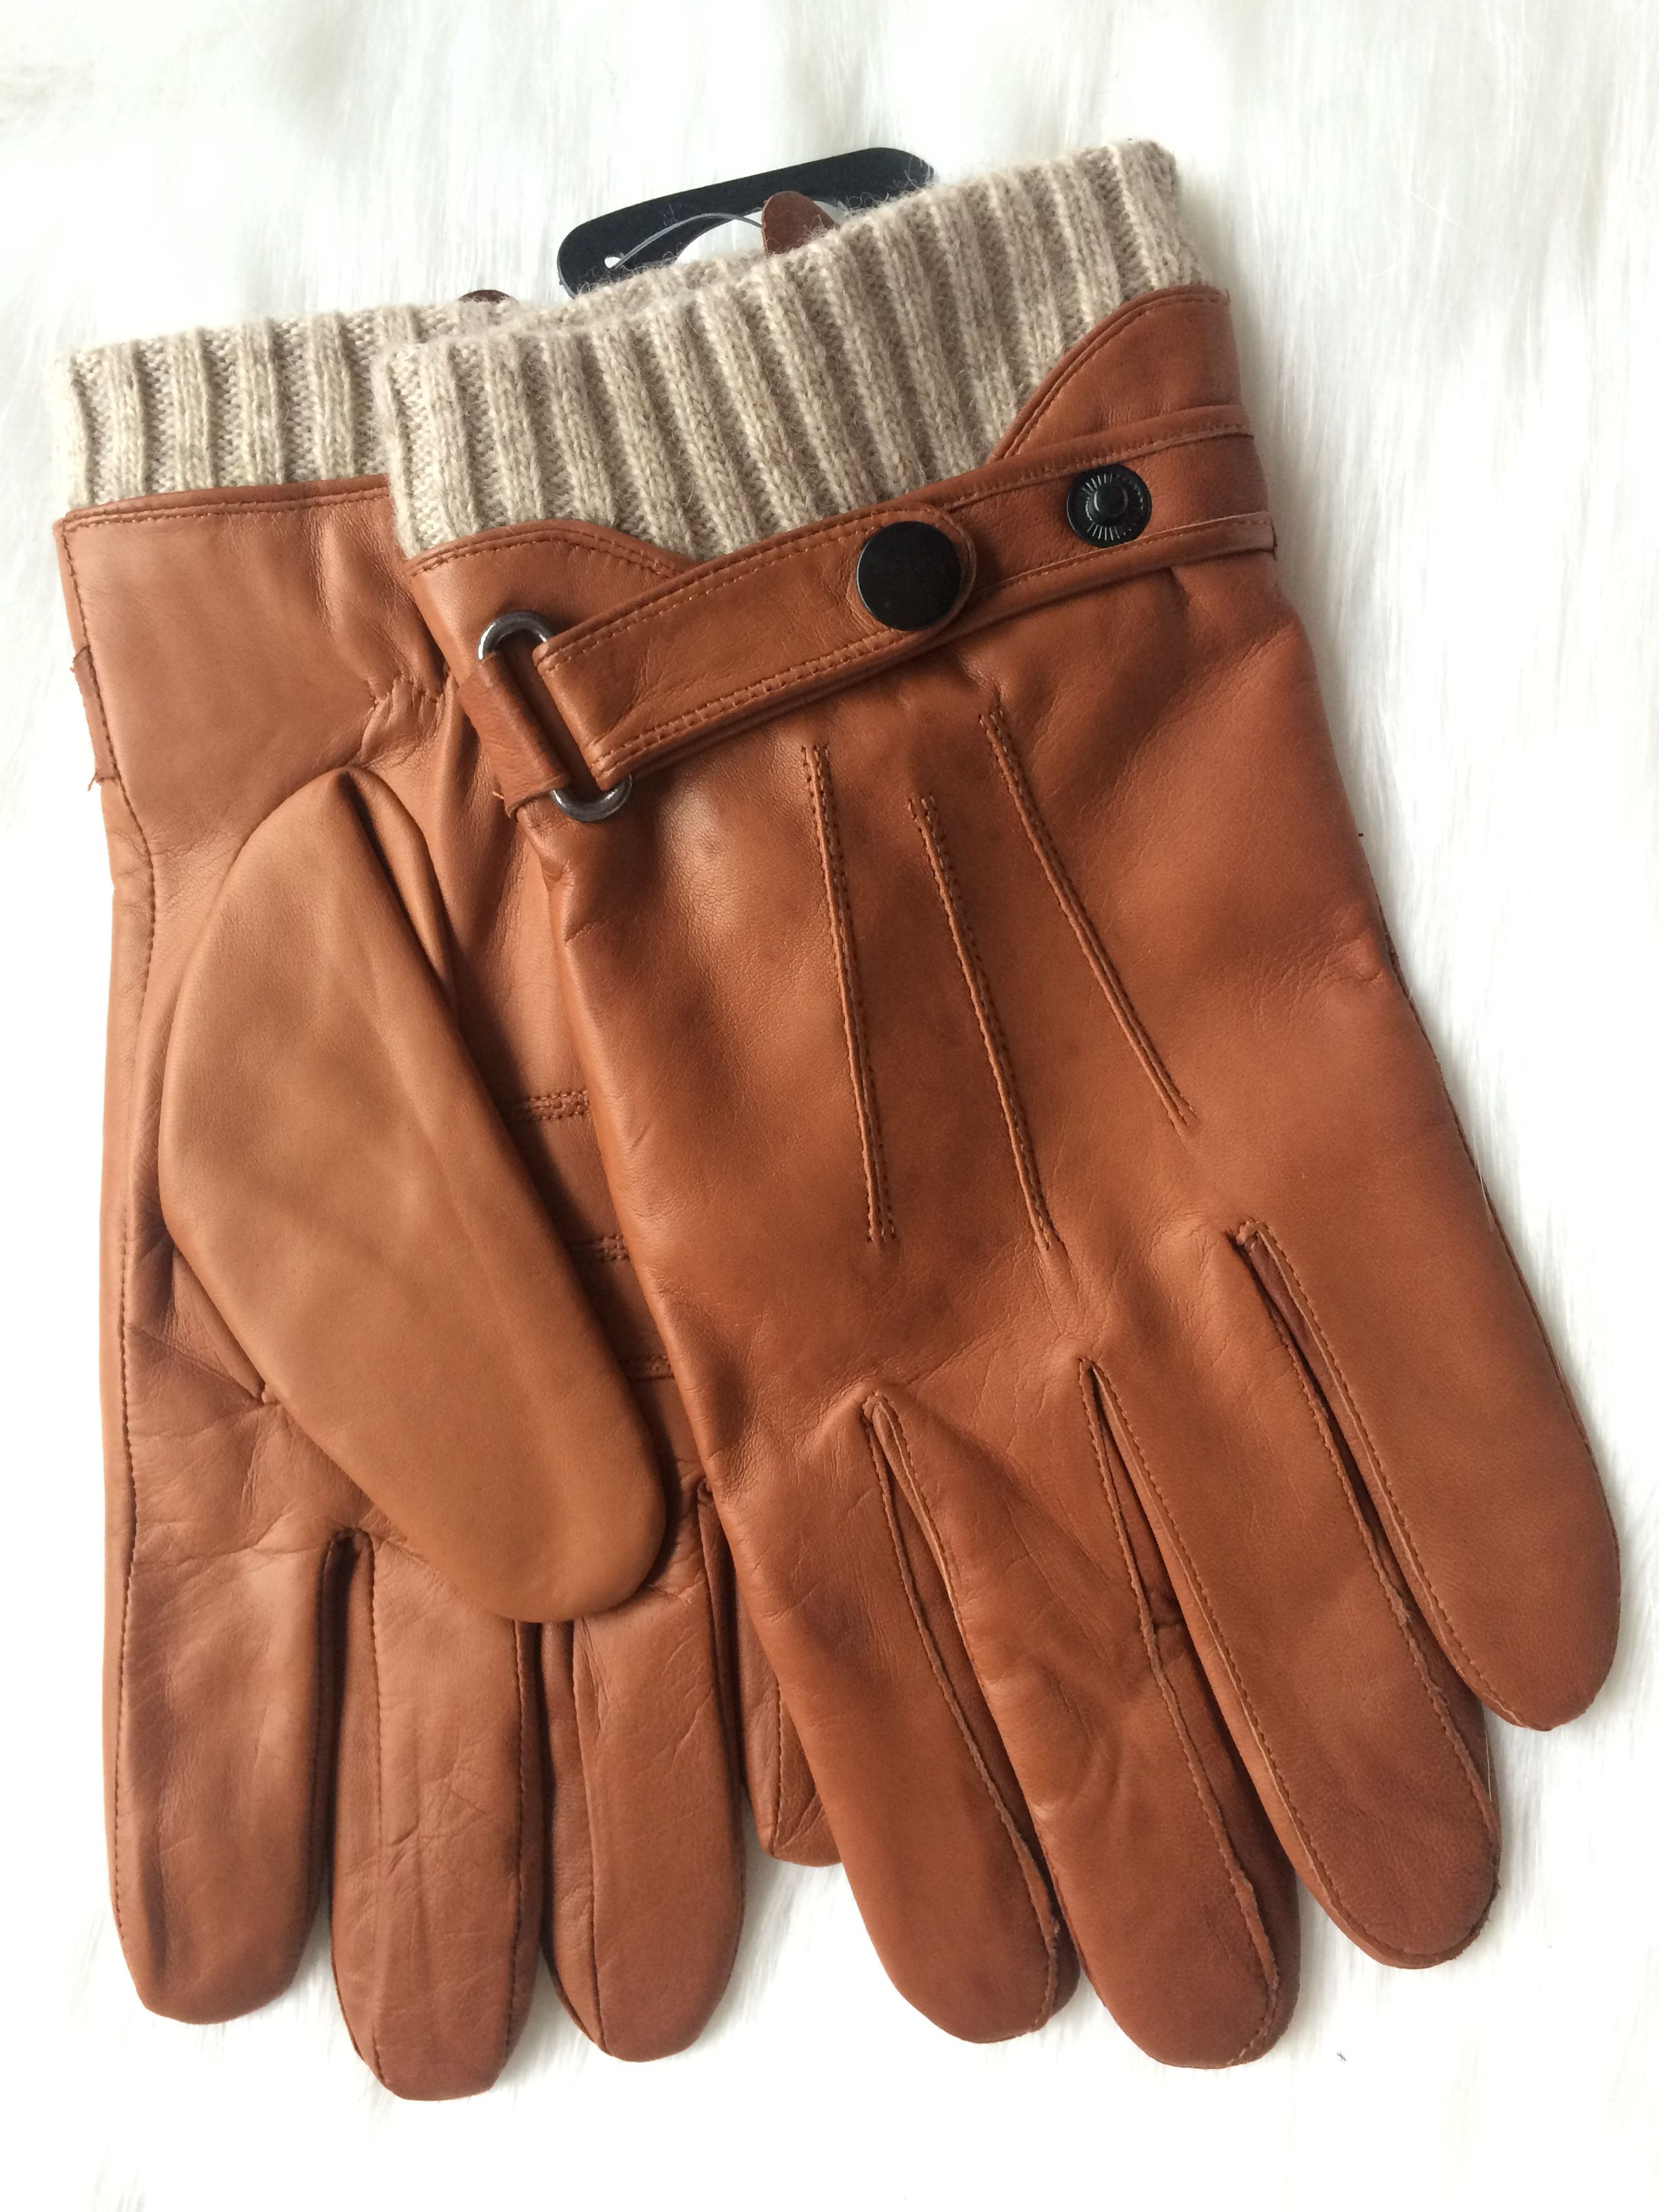 MEN'S LEATHER DRESS FASHION WINTER WARMING VINTAGE CLASSIC QUALITY GLOVES